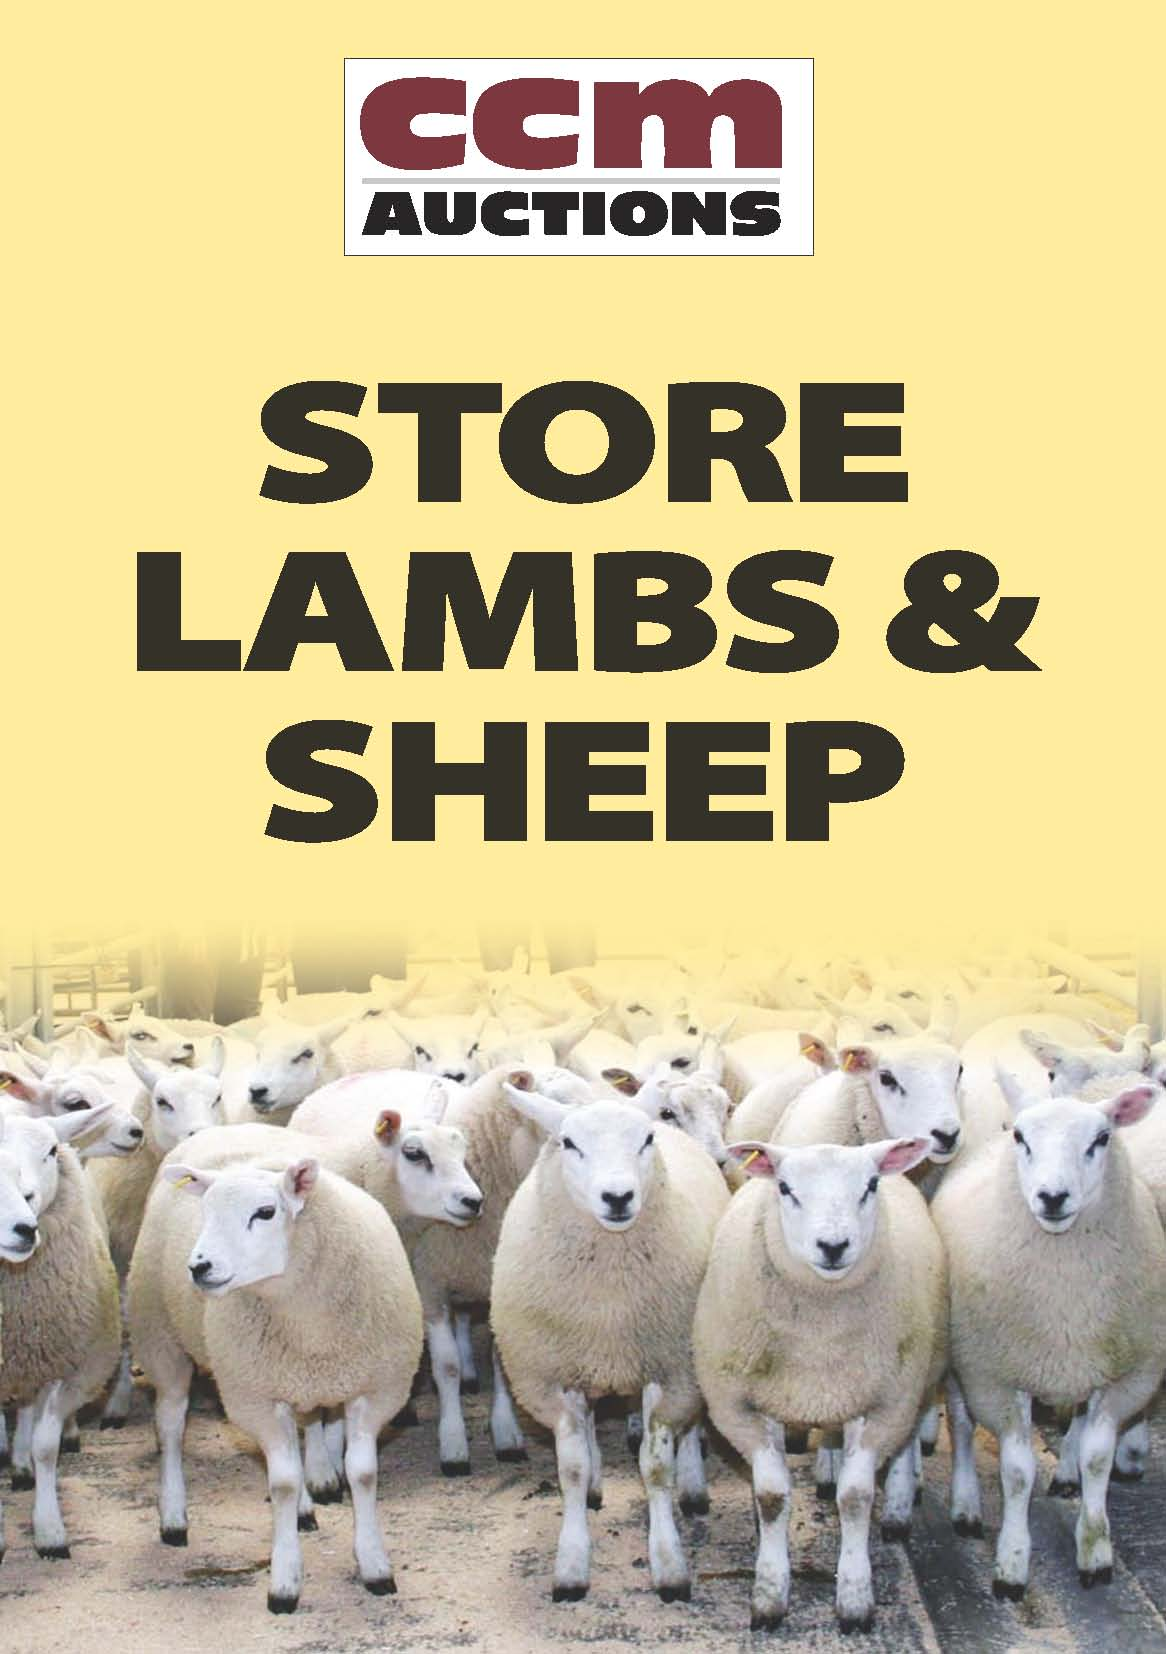 STORE LAMBS - WEDNESDAY 13TH DECEMBER 2017